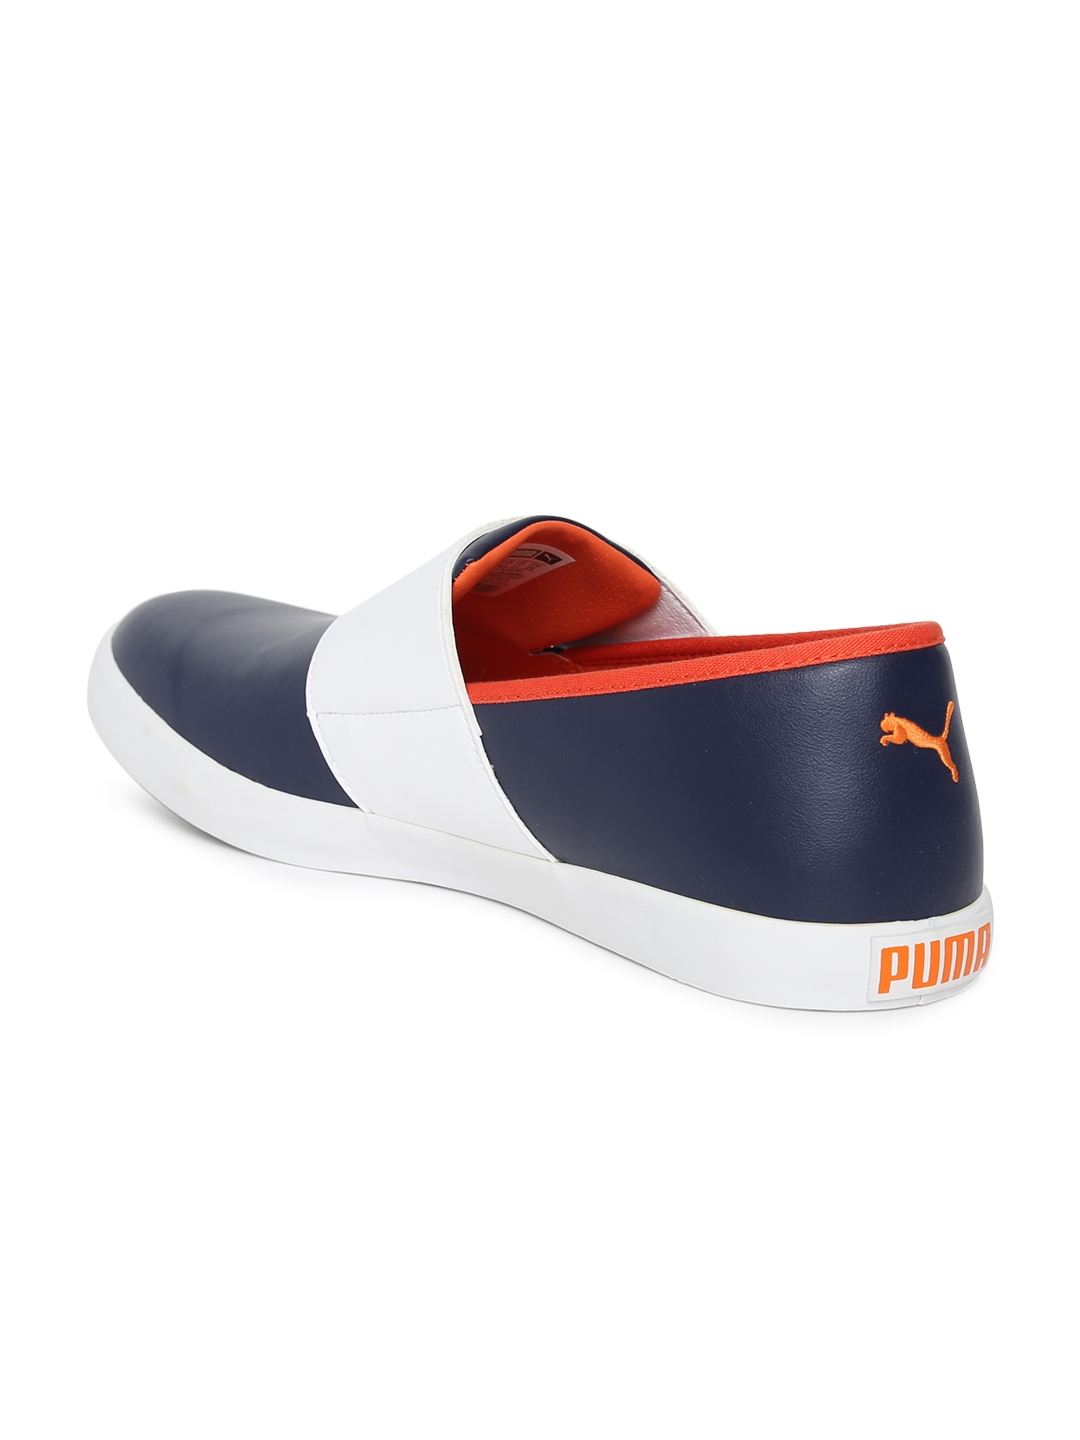 03fb1b58c5b7d6 Buy Puma Unisex Navy Blue   White El Rey Milano II DP Sneakers ...